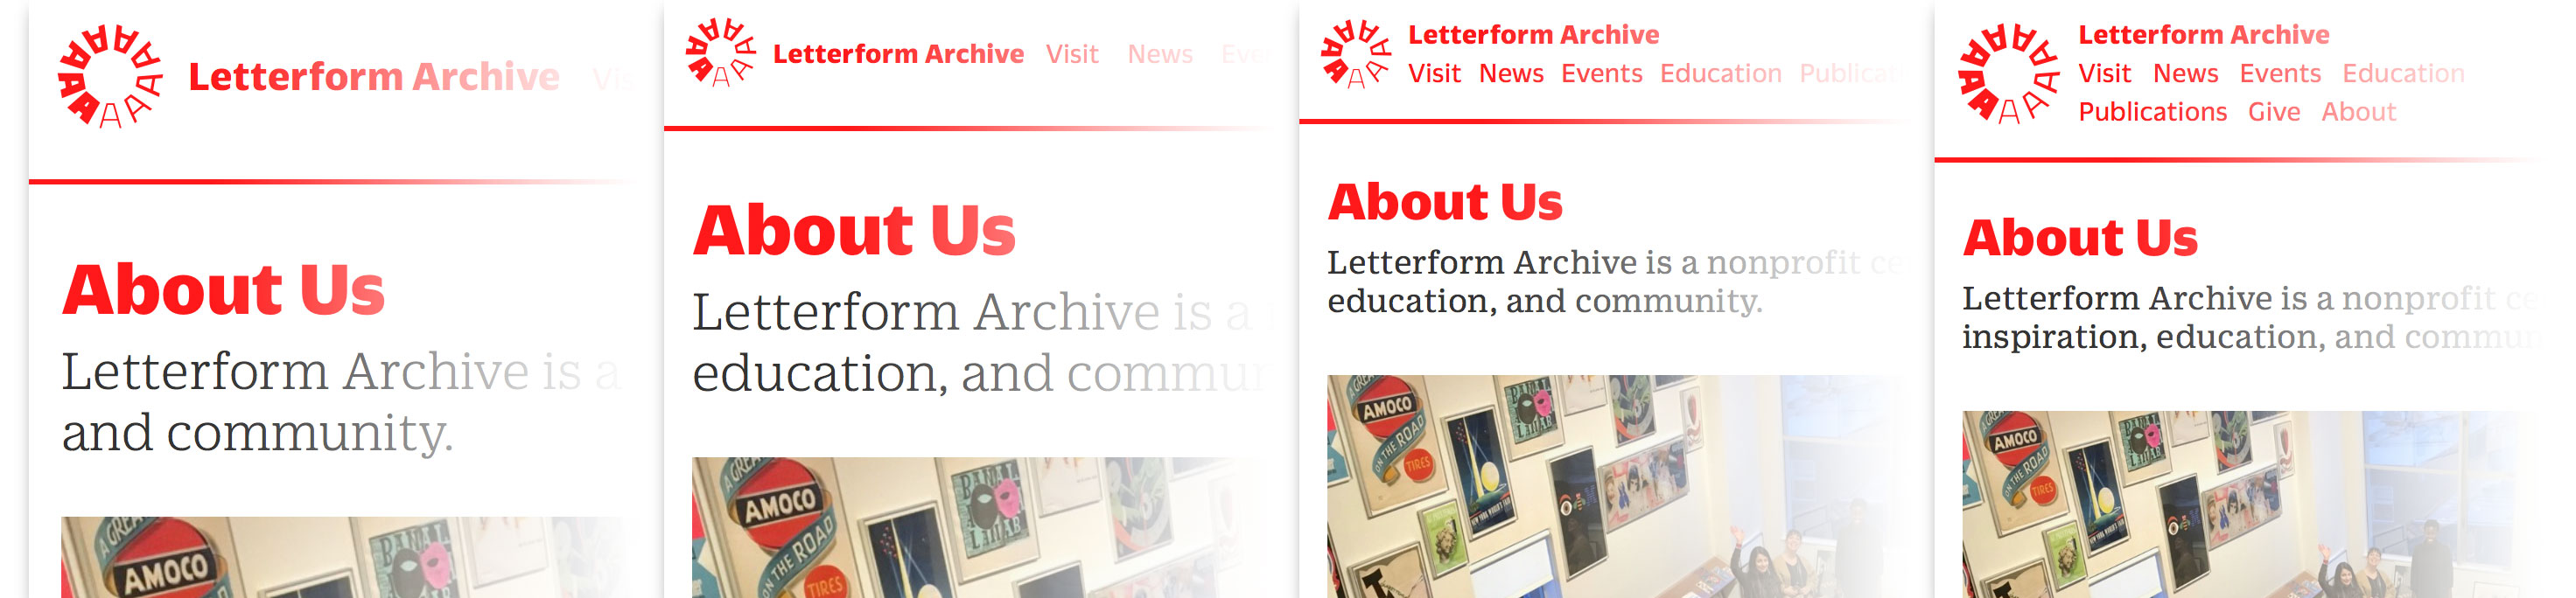 Responsive nav of Letterform Archive website